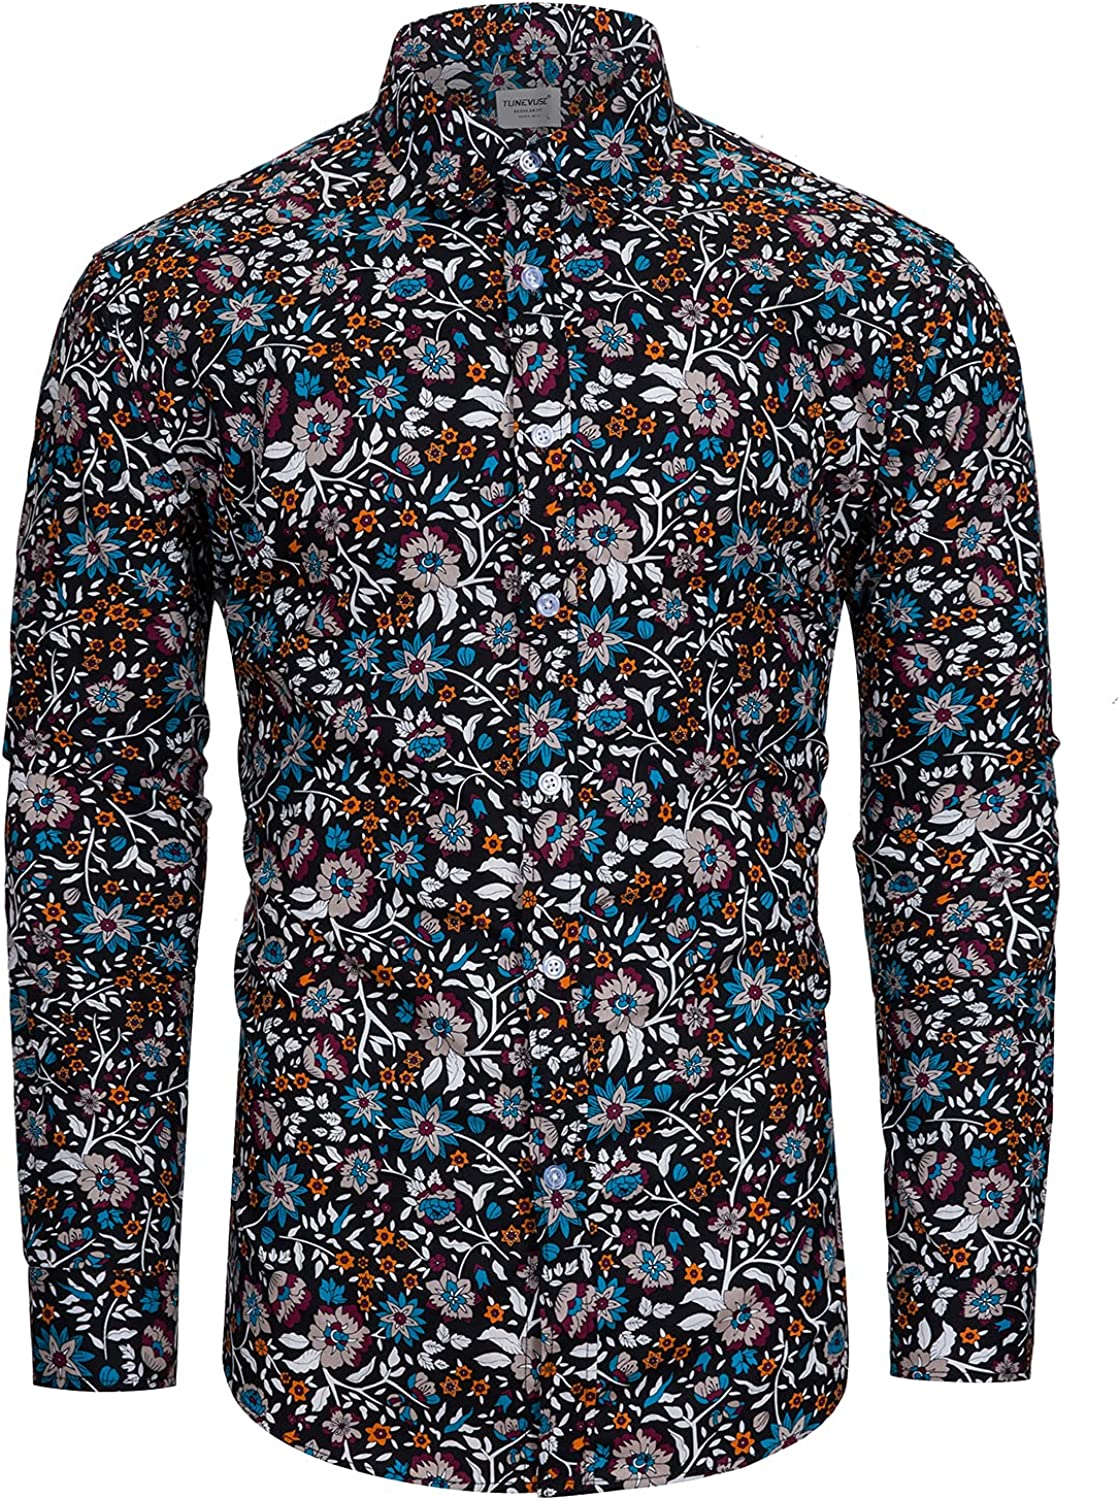 Weekly update TUNEVUSE Mens 100% Cotton Floral Flower Print Long Sleeve Shirt Opening large release sale